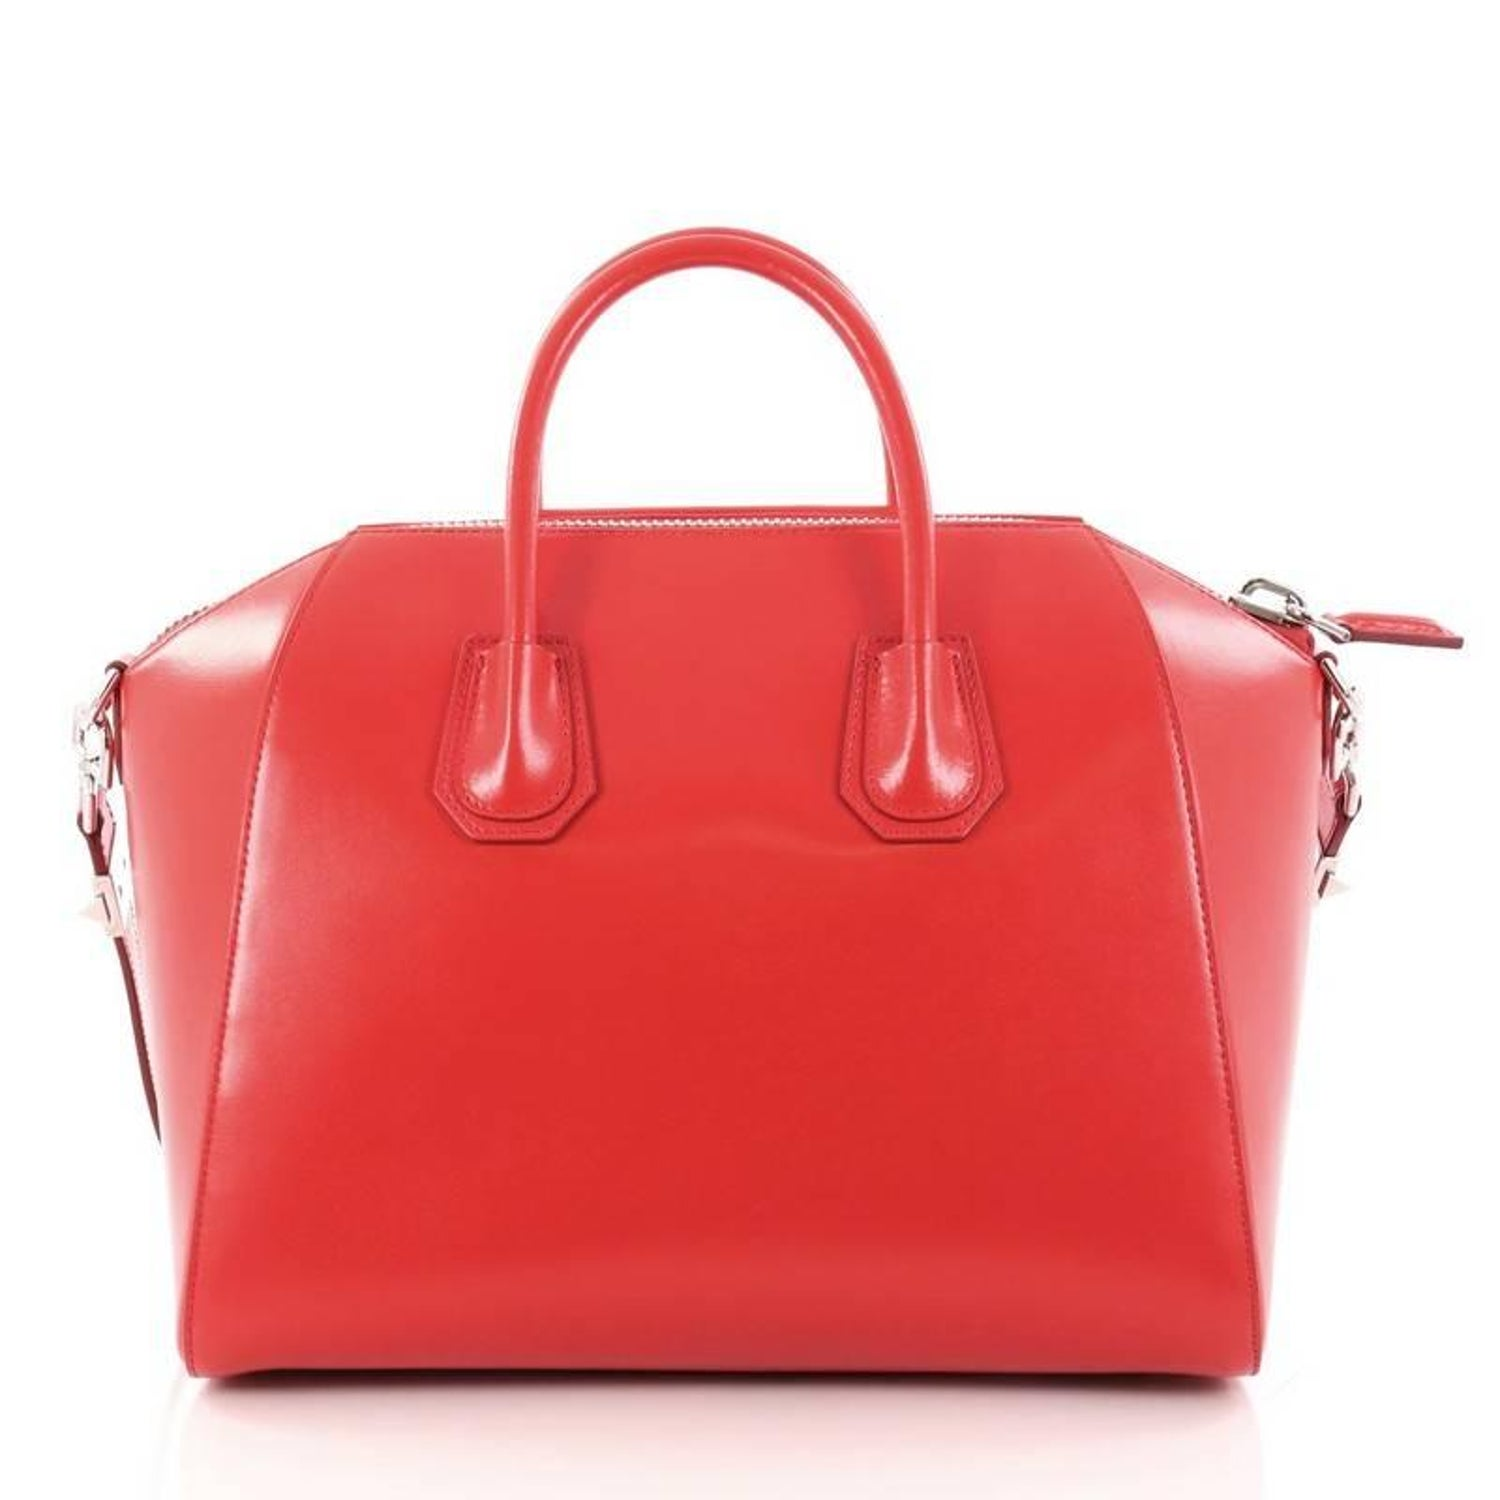 Givenchy Antigona Bag Glazed Leather Medium at 1stdibs